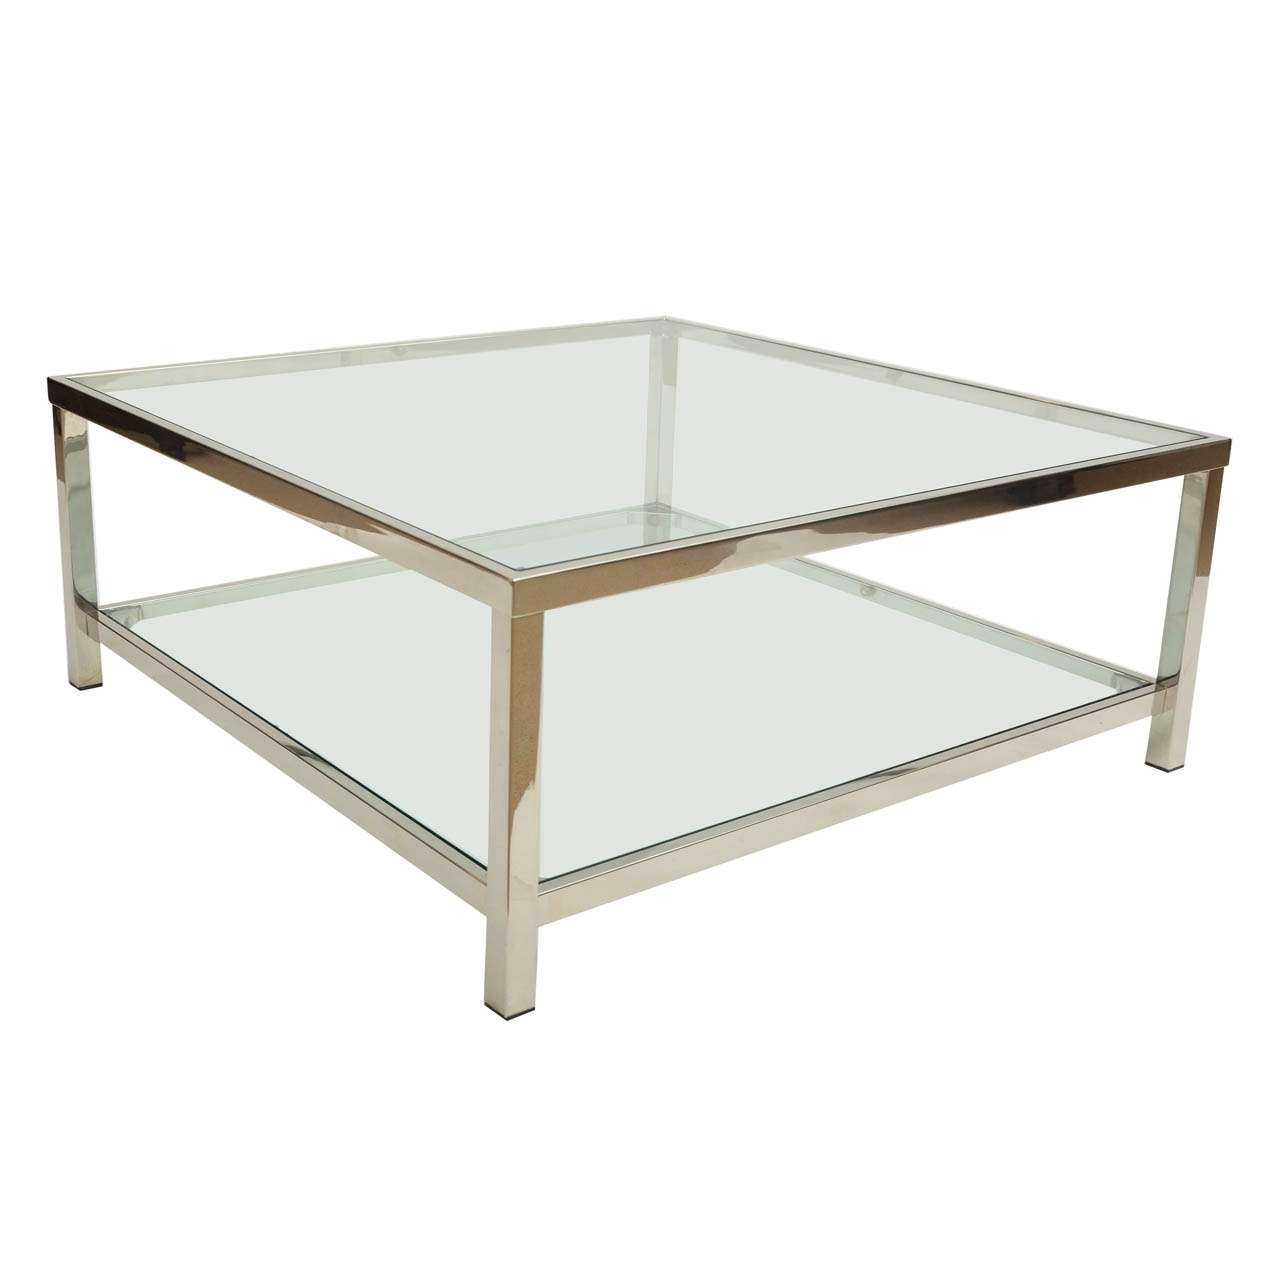 All You Need To Know About Glass And Chrome Coffee Tables Pertaining To Most Popular Glass Chrome Coffee Tables (Gallery 10 of 20)